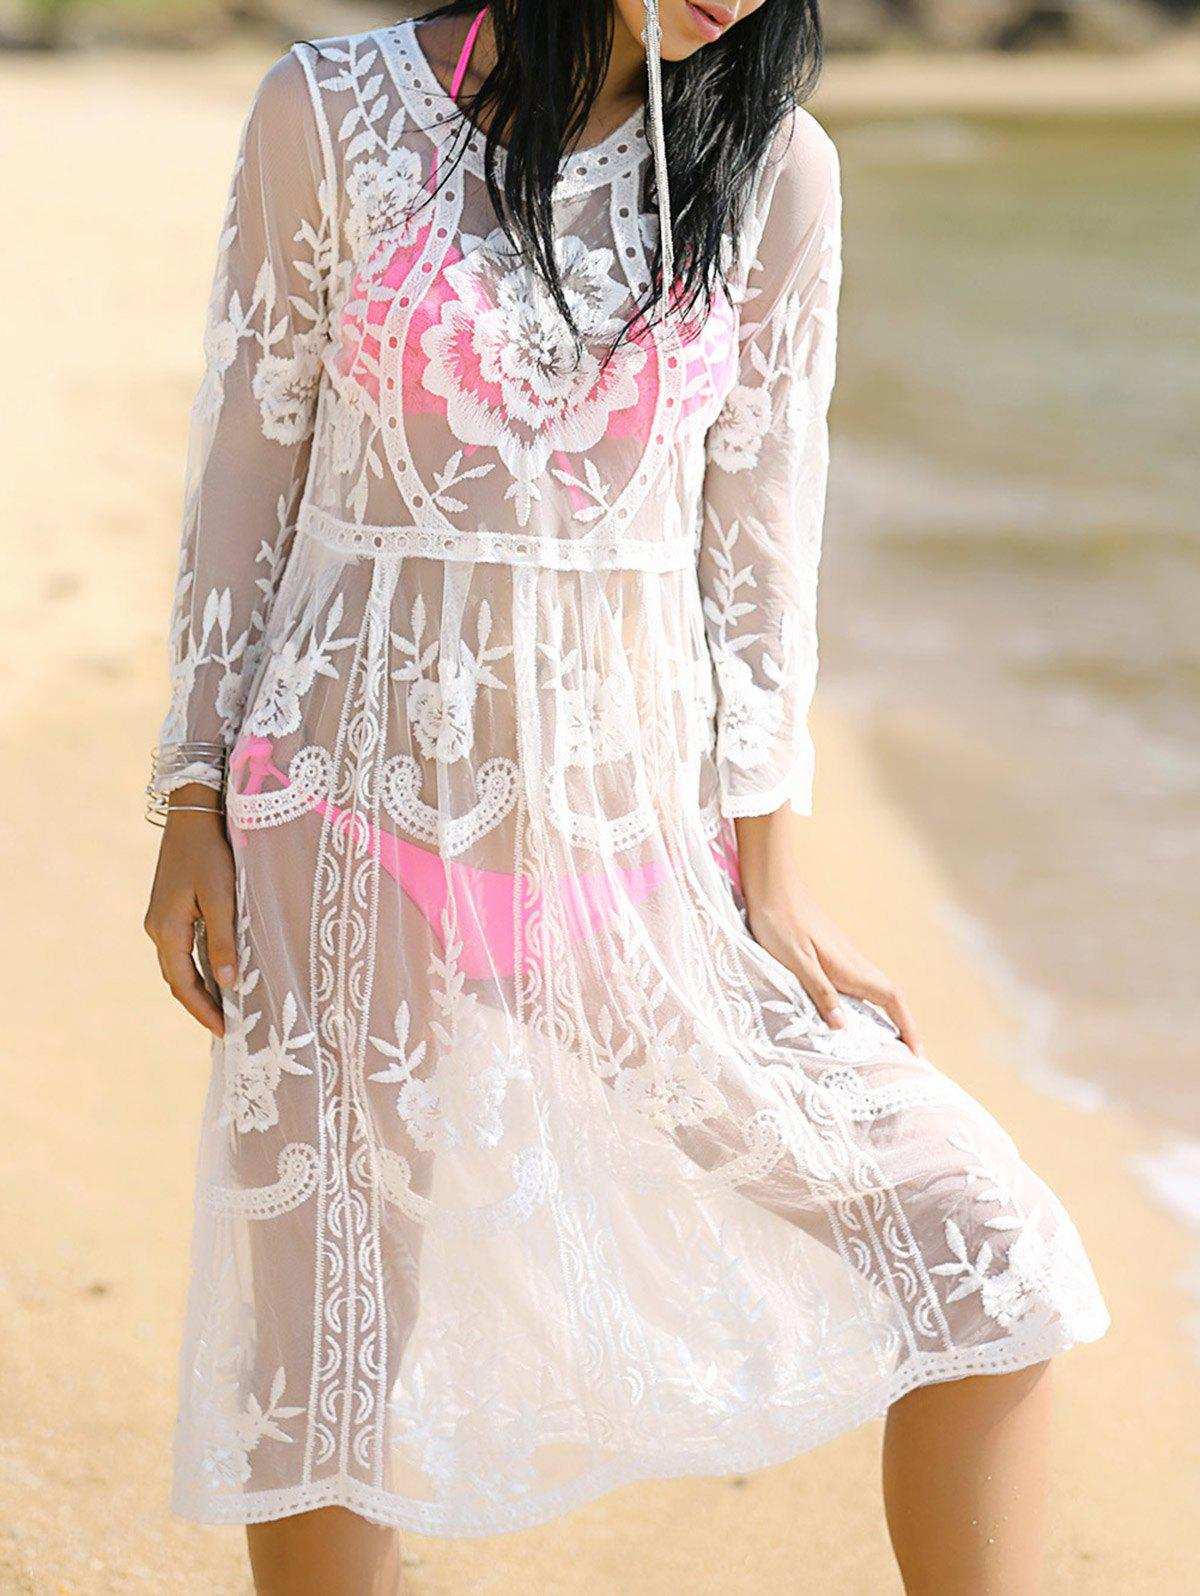 Stylish Women's Round Neck Long Sleeve See-Through Cover-Up - WHITE ONE SIZE(FIT SIZE XS TO M)